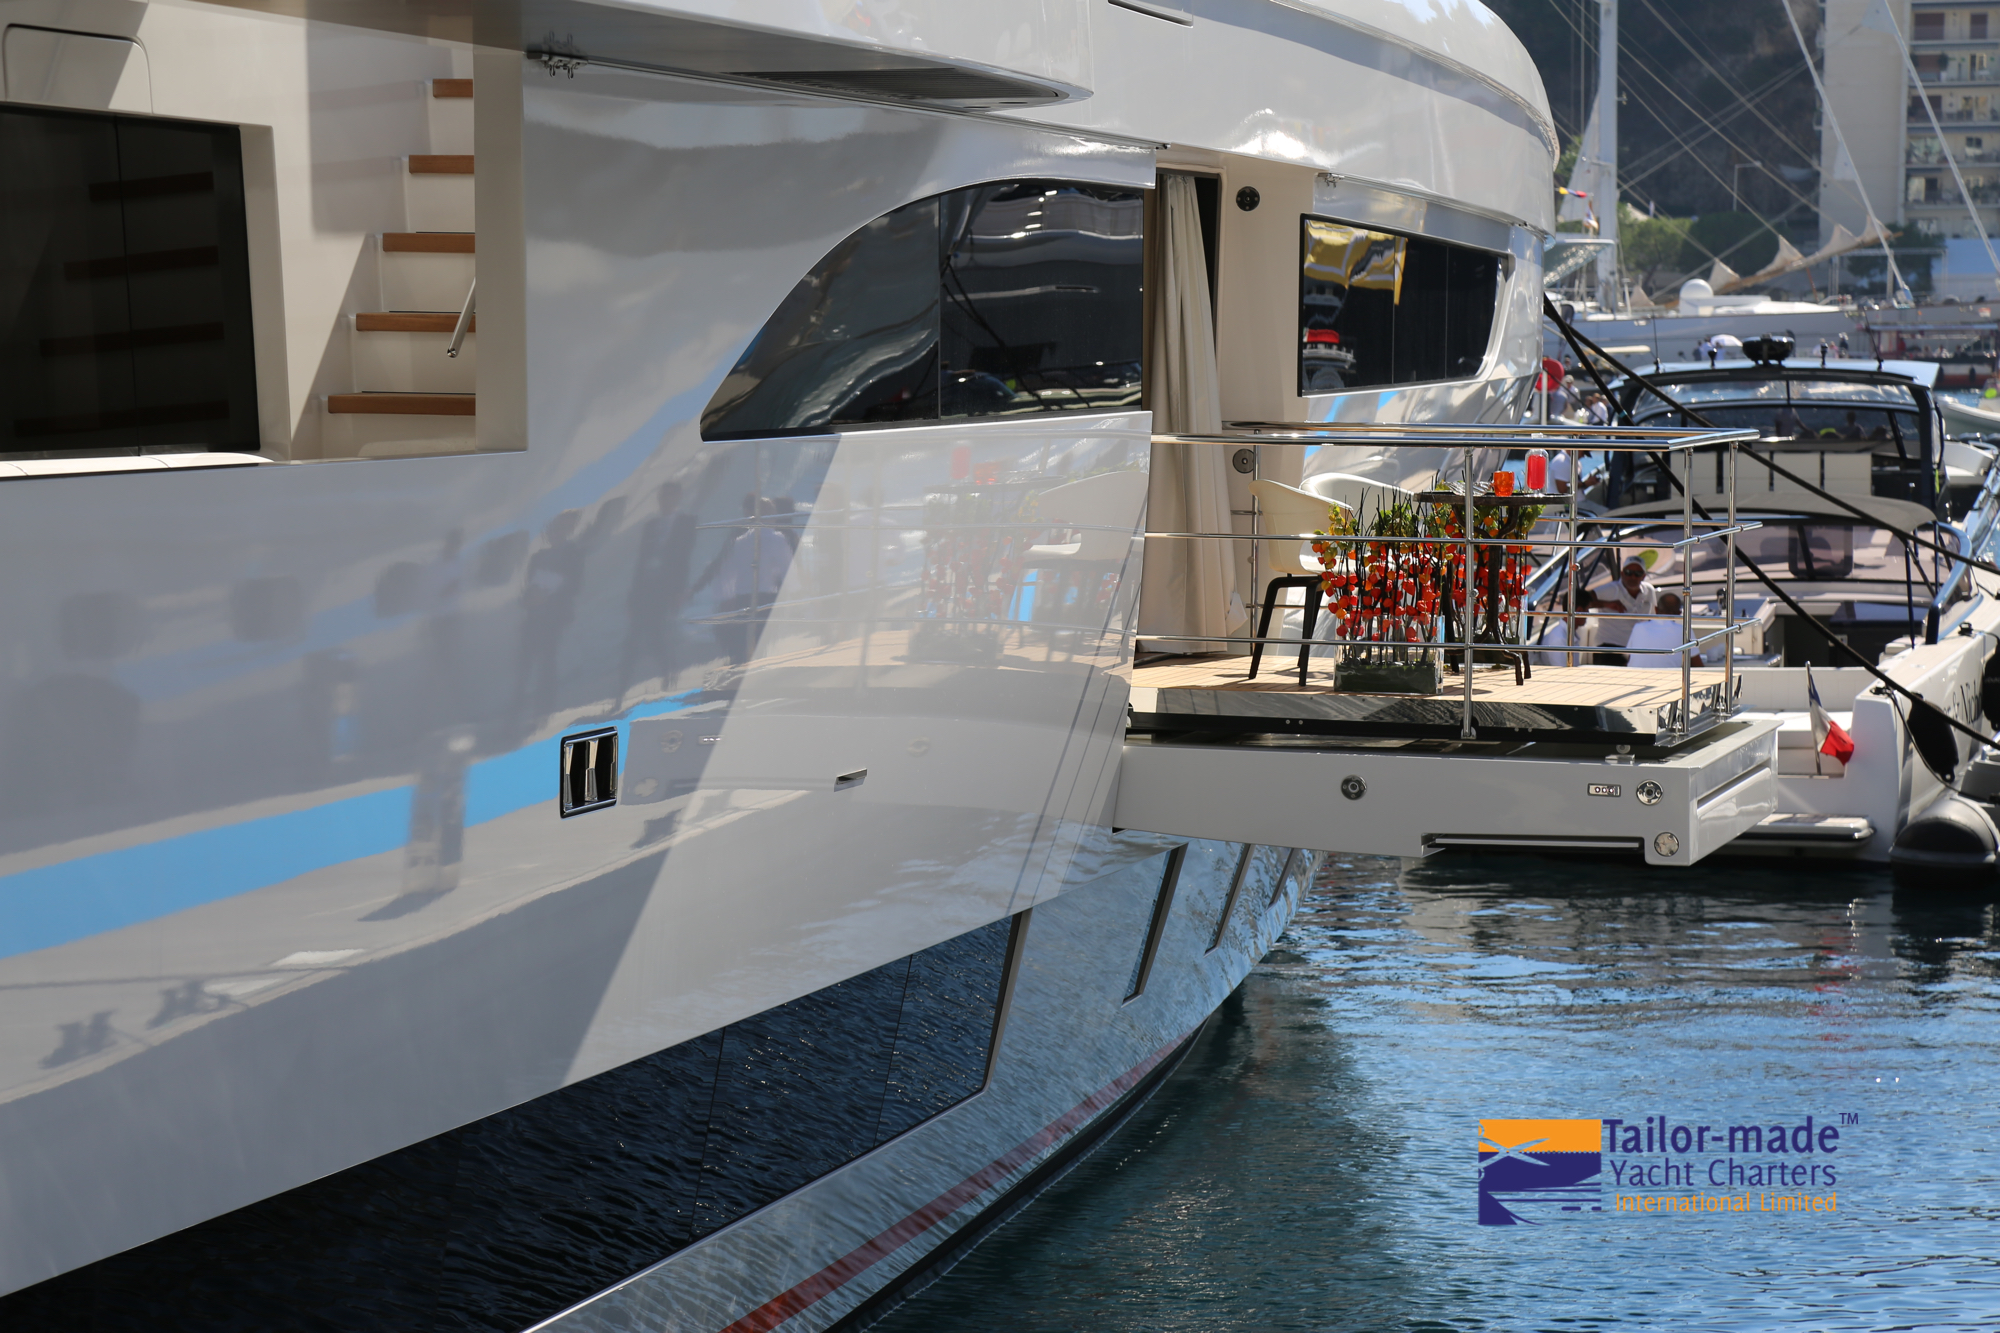 Tailor-made Yacht Charters International Limited